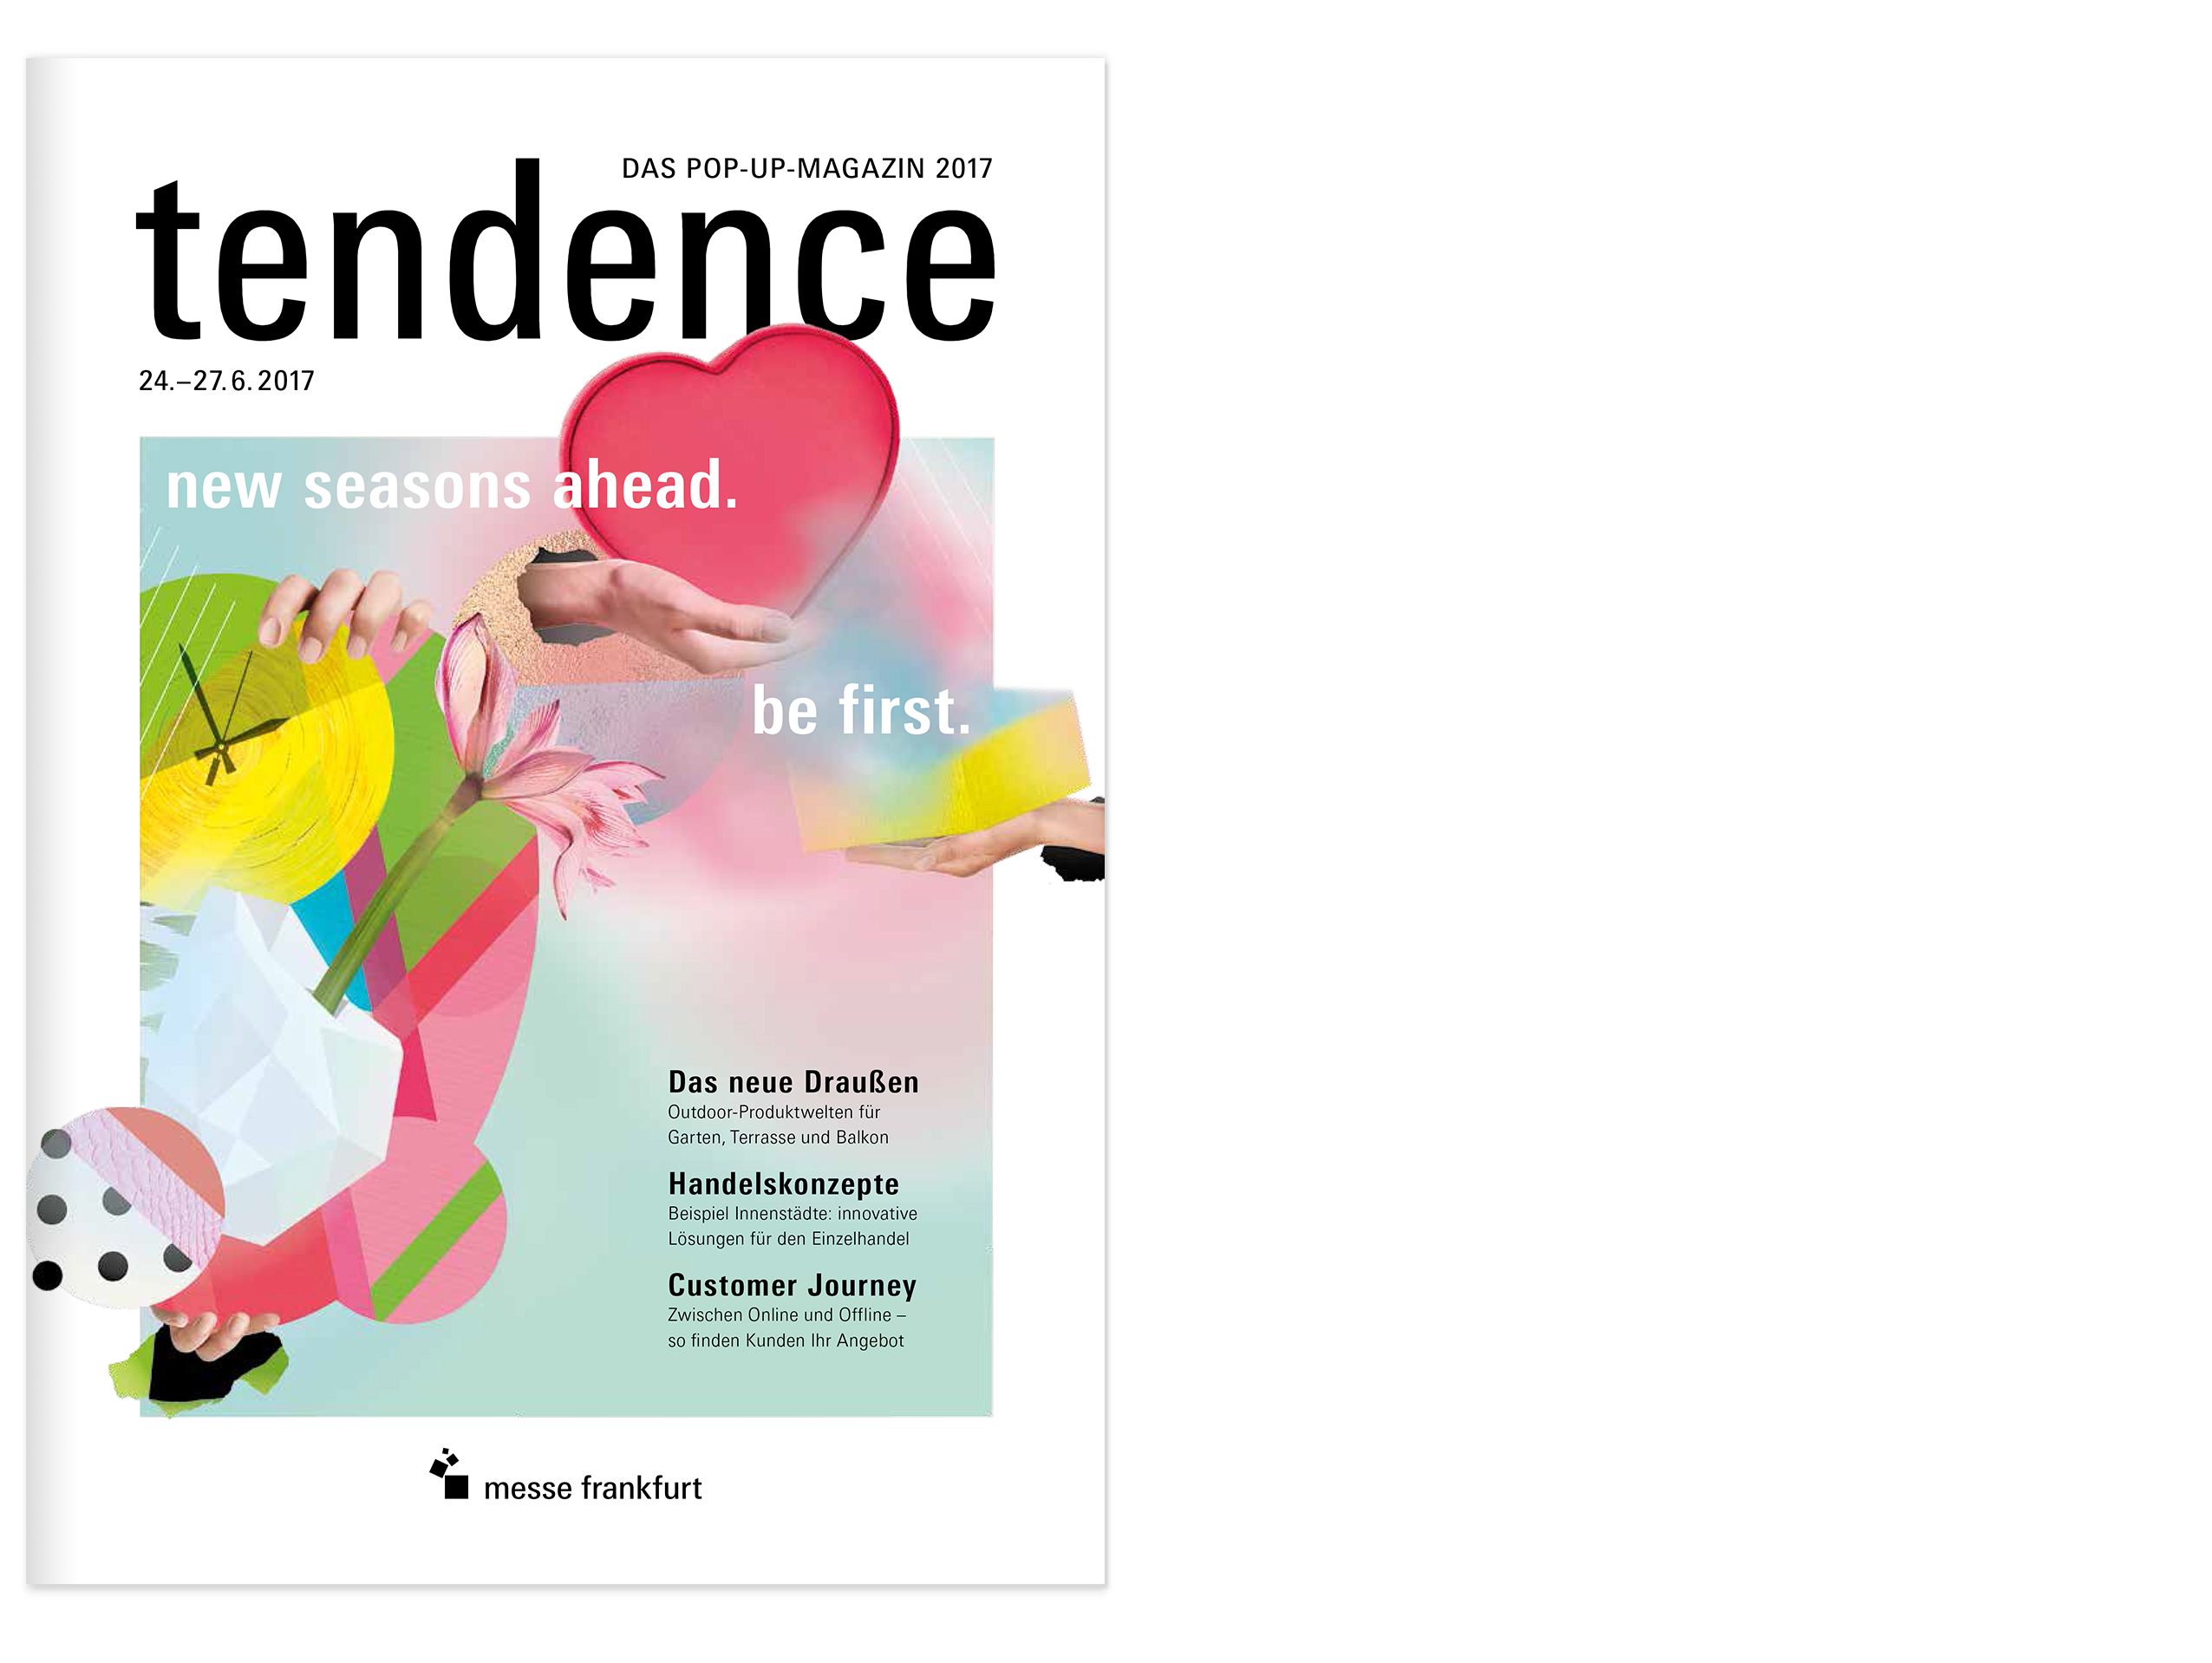 TENDENCE – DAS POP-UP MAGAZIN